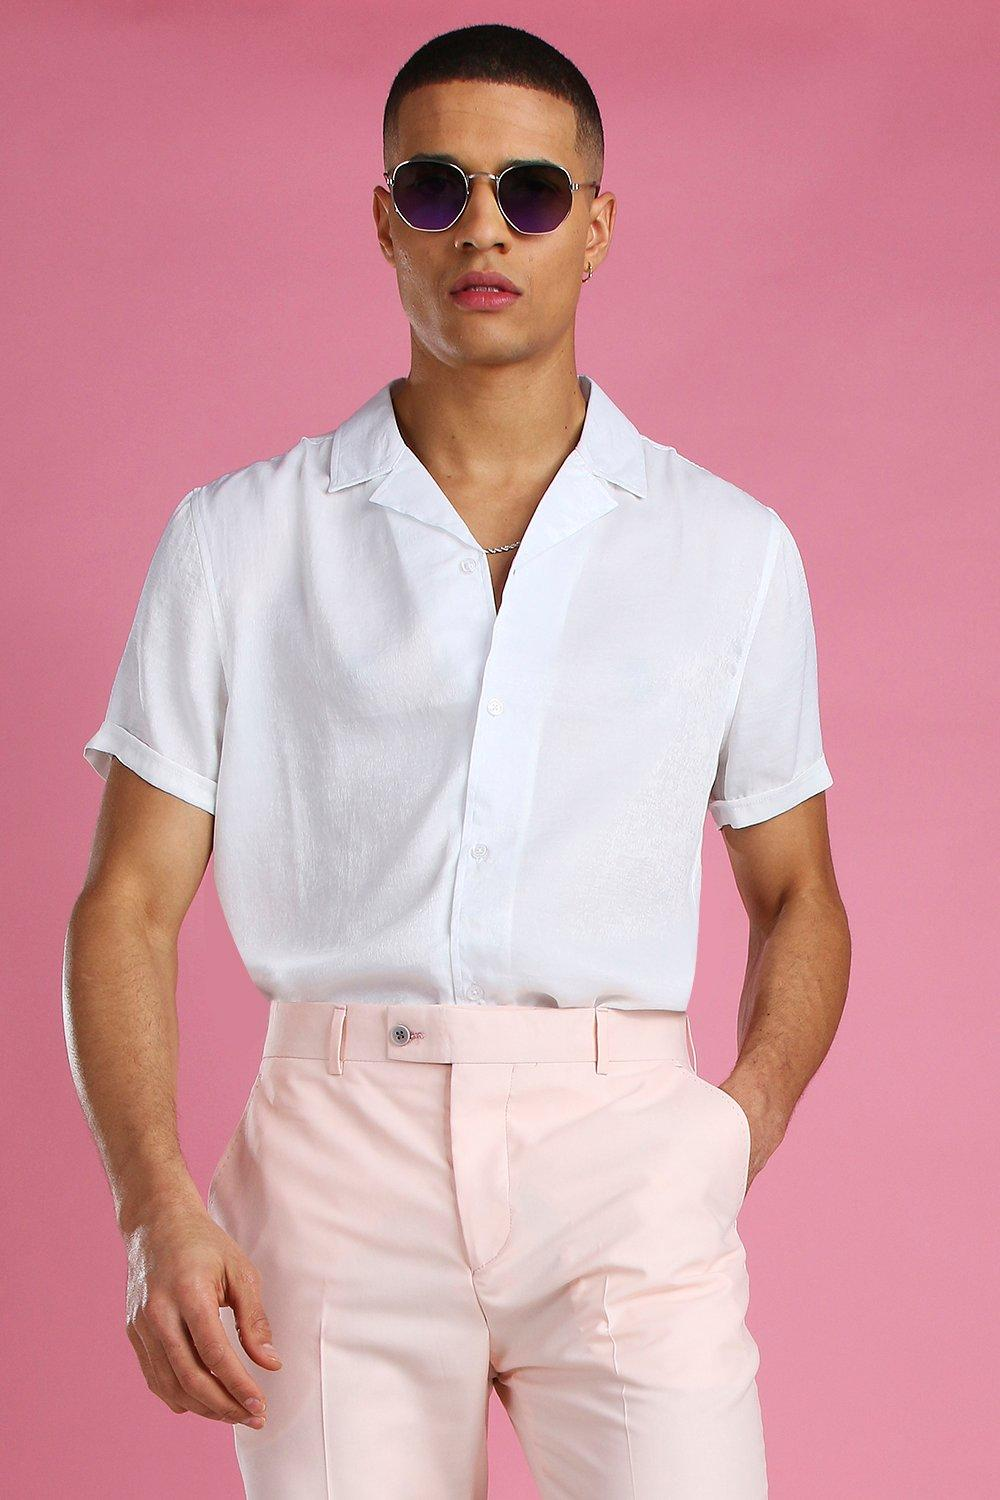 60s 70s Men's Clothing UK | Shirts, Trousers, Shoes Mens Short Sleeve Revere Collar Satin Party Shirt - White $16.00 AT vintagedancer.com